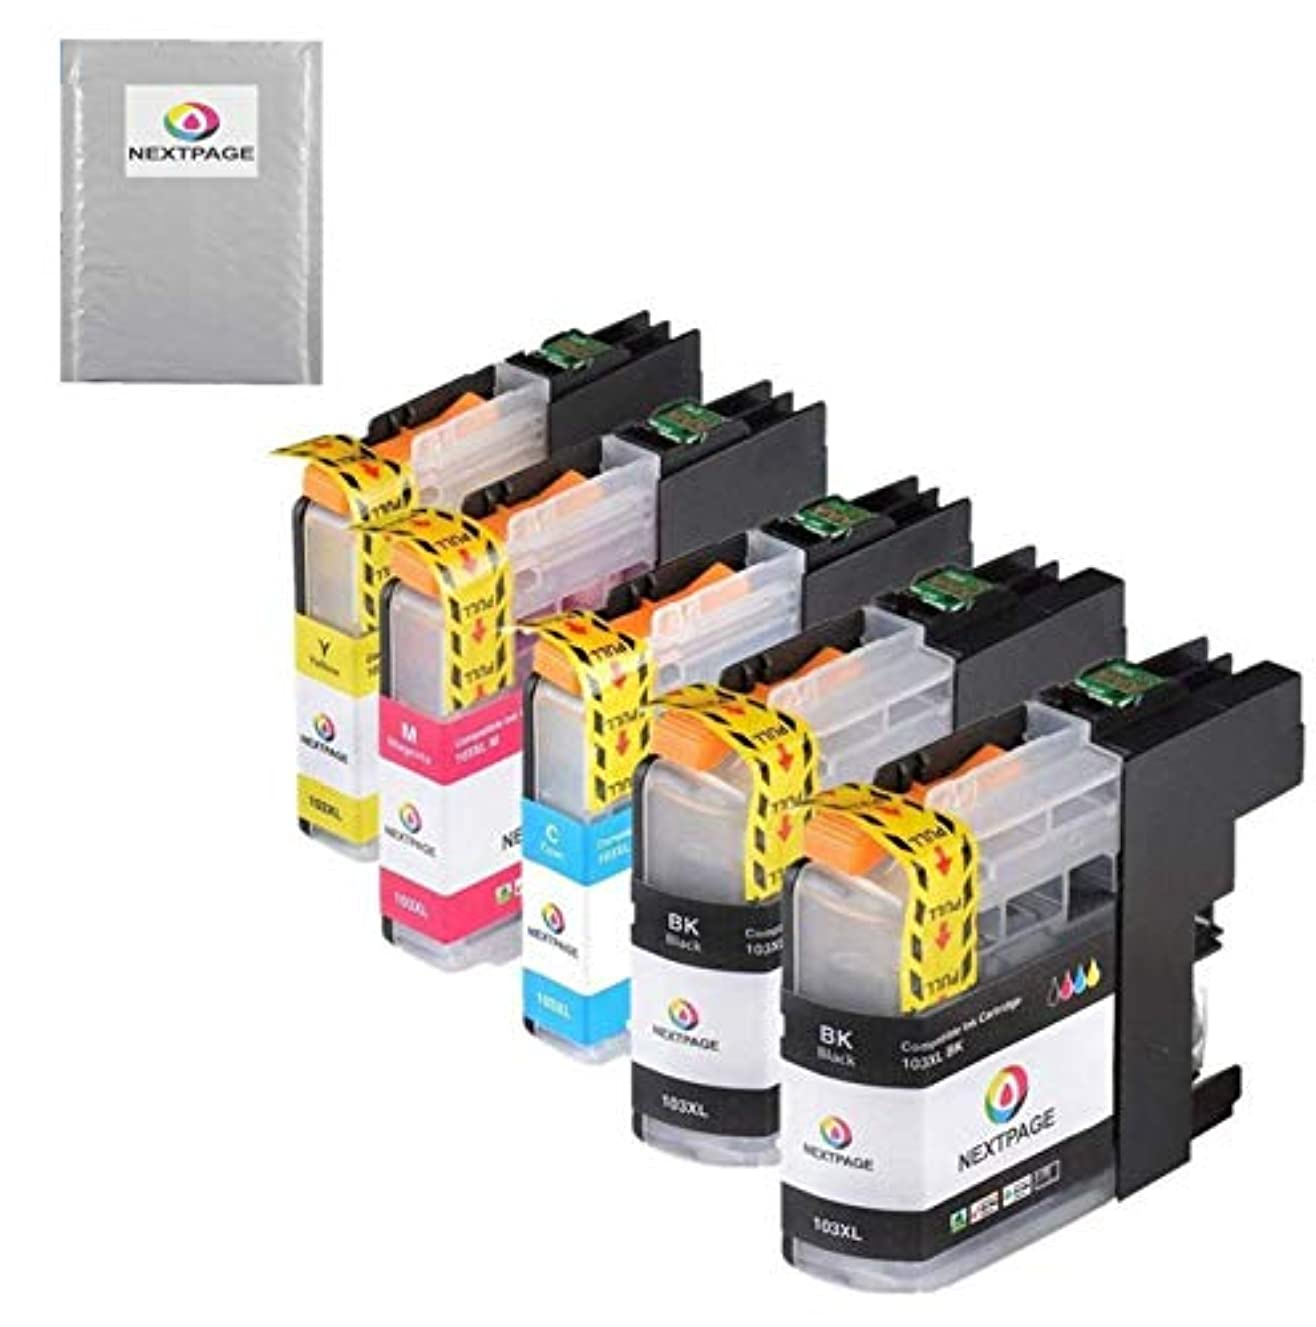 NEXTPAGE Compatible Ink Cartridge Replacement Brother LC-103XL LC103XL LC103 XL Color Ink Cartridges MFC-J870DW MFC-J450DW J470DW J6720DW J4510DW J4710DW J475DW J285DW Printer, 5 Black